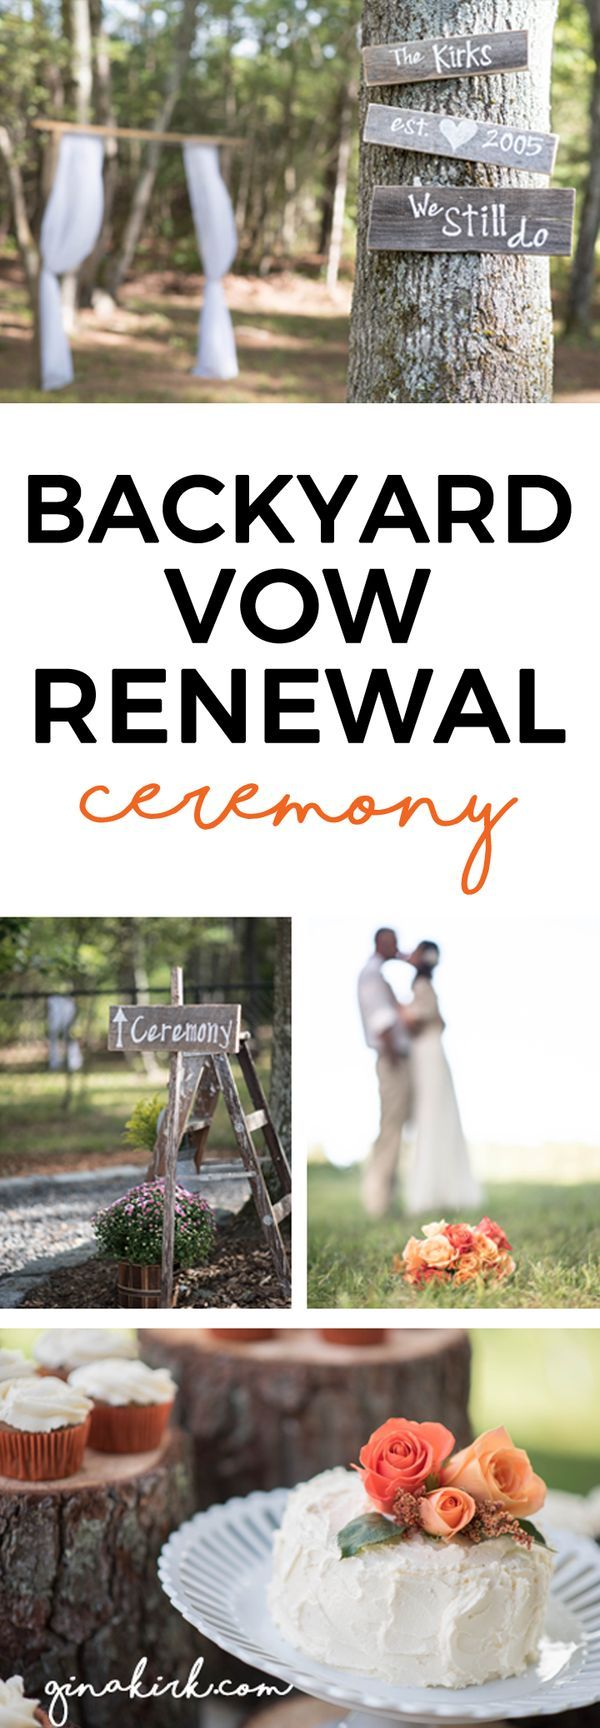 493 Best Our Vow Renewals Images On Pinterest Fire Fighters Fire